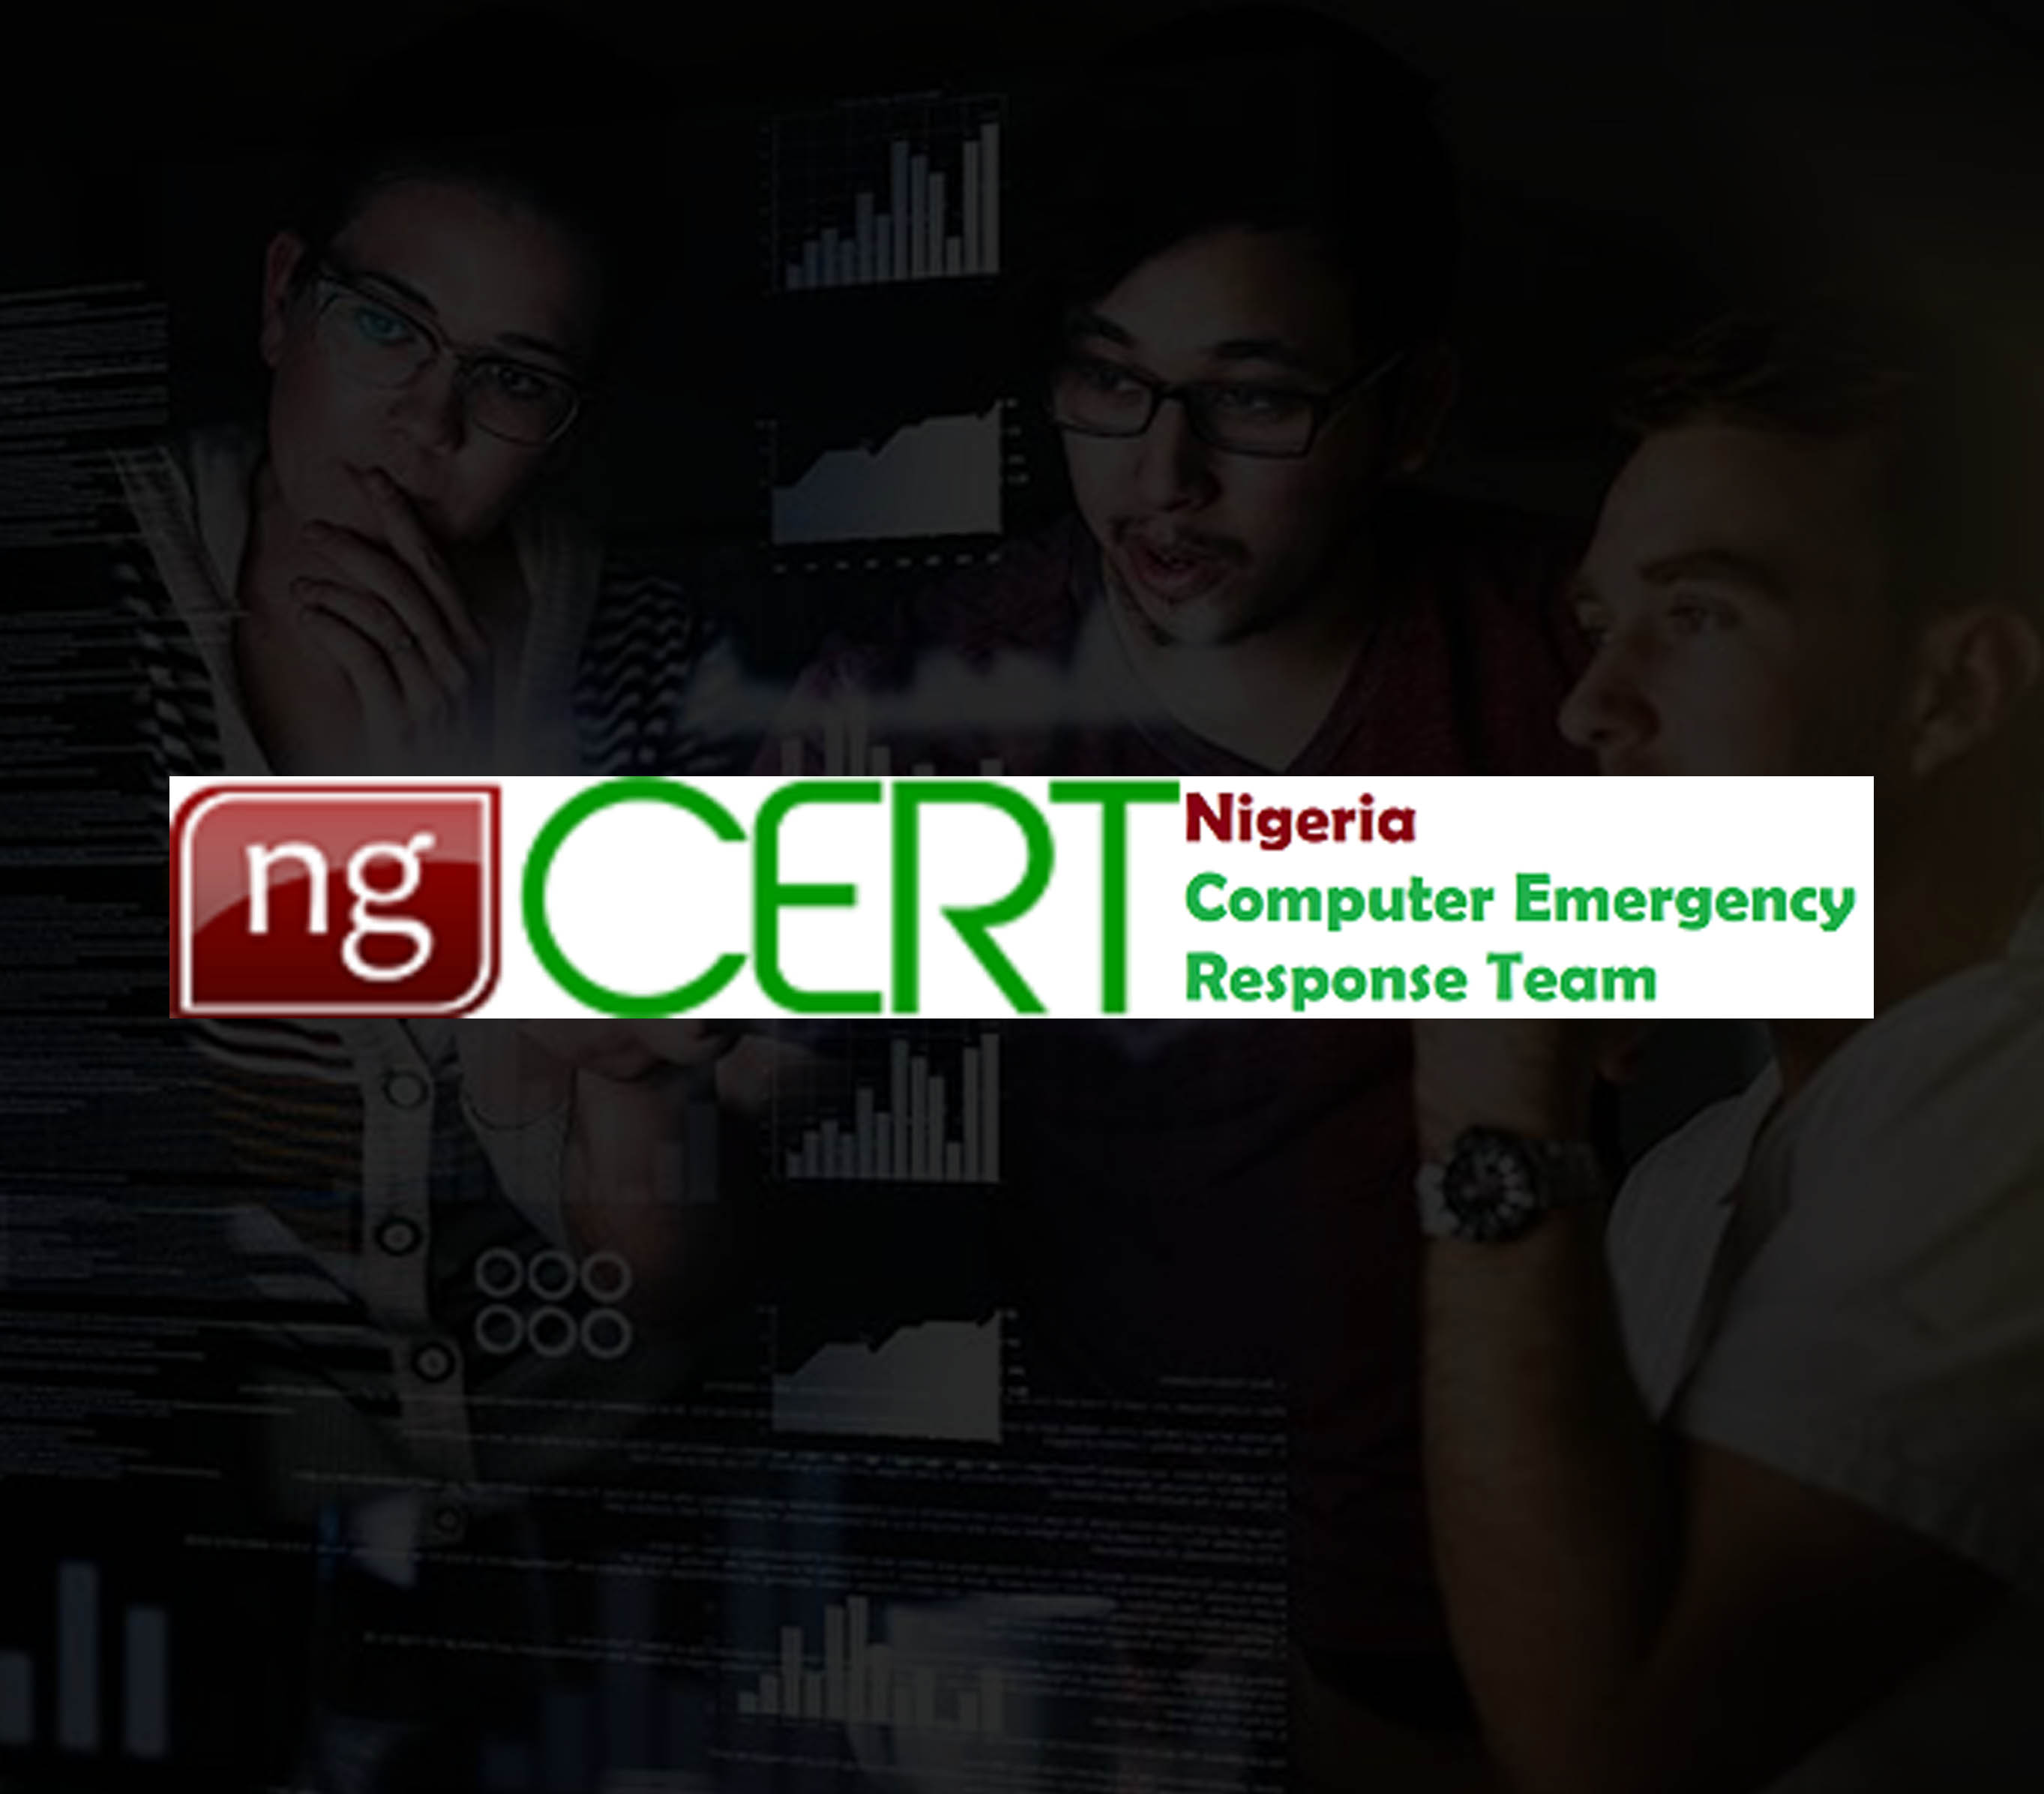 Nigerian CERT | Emergency Response Team